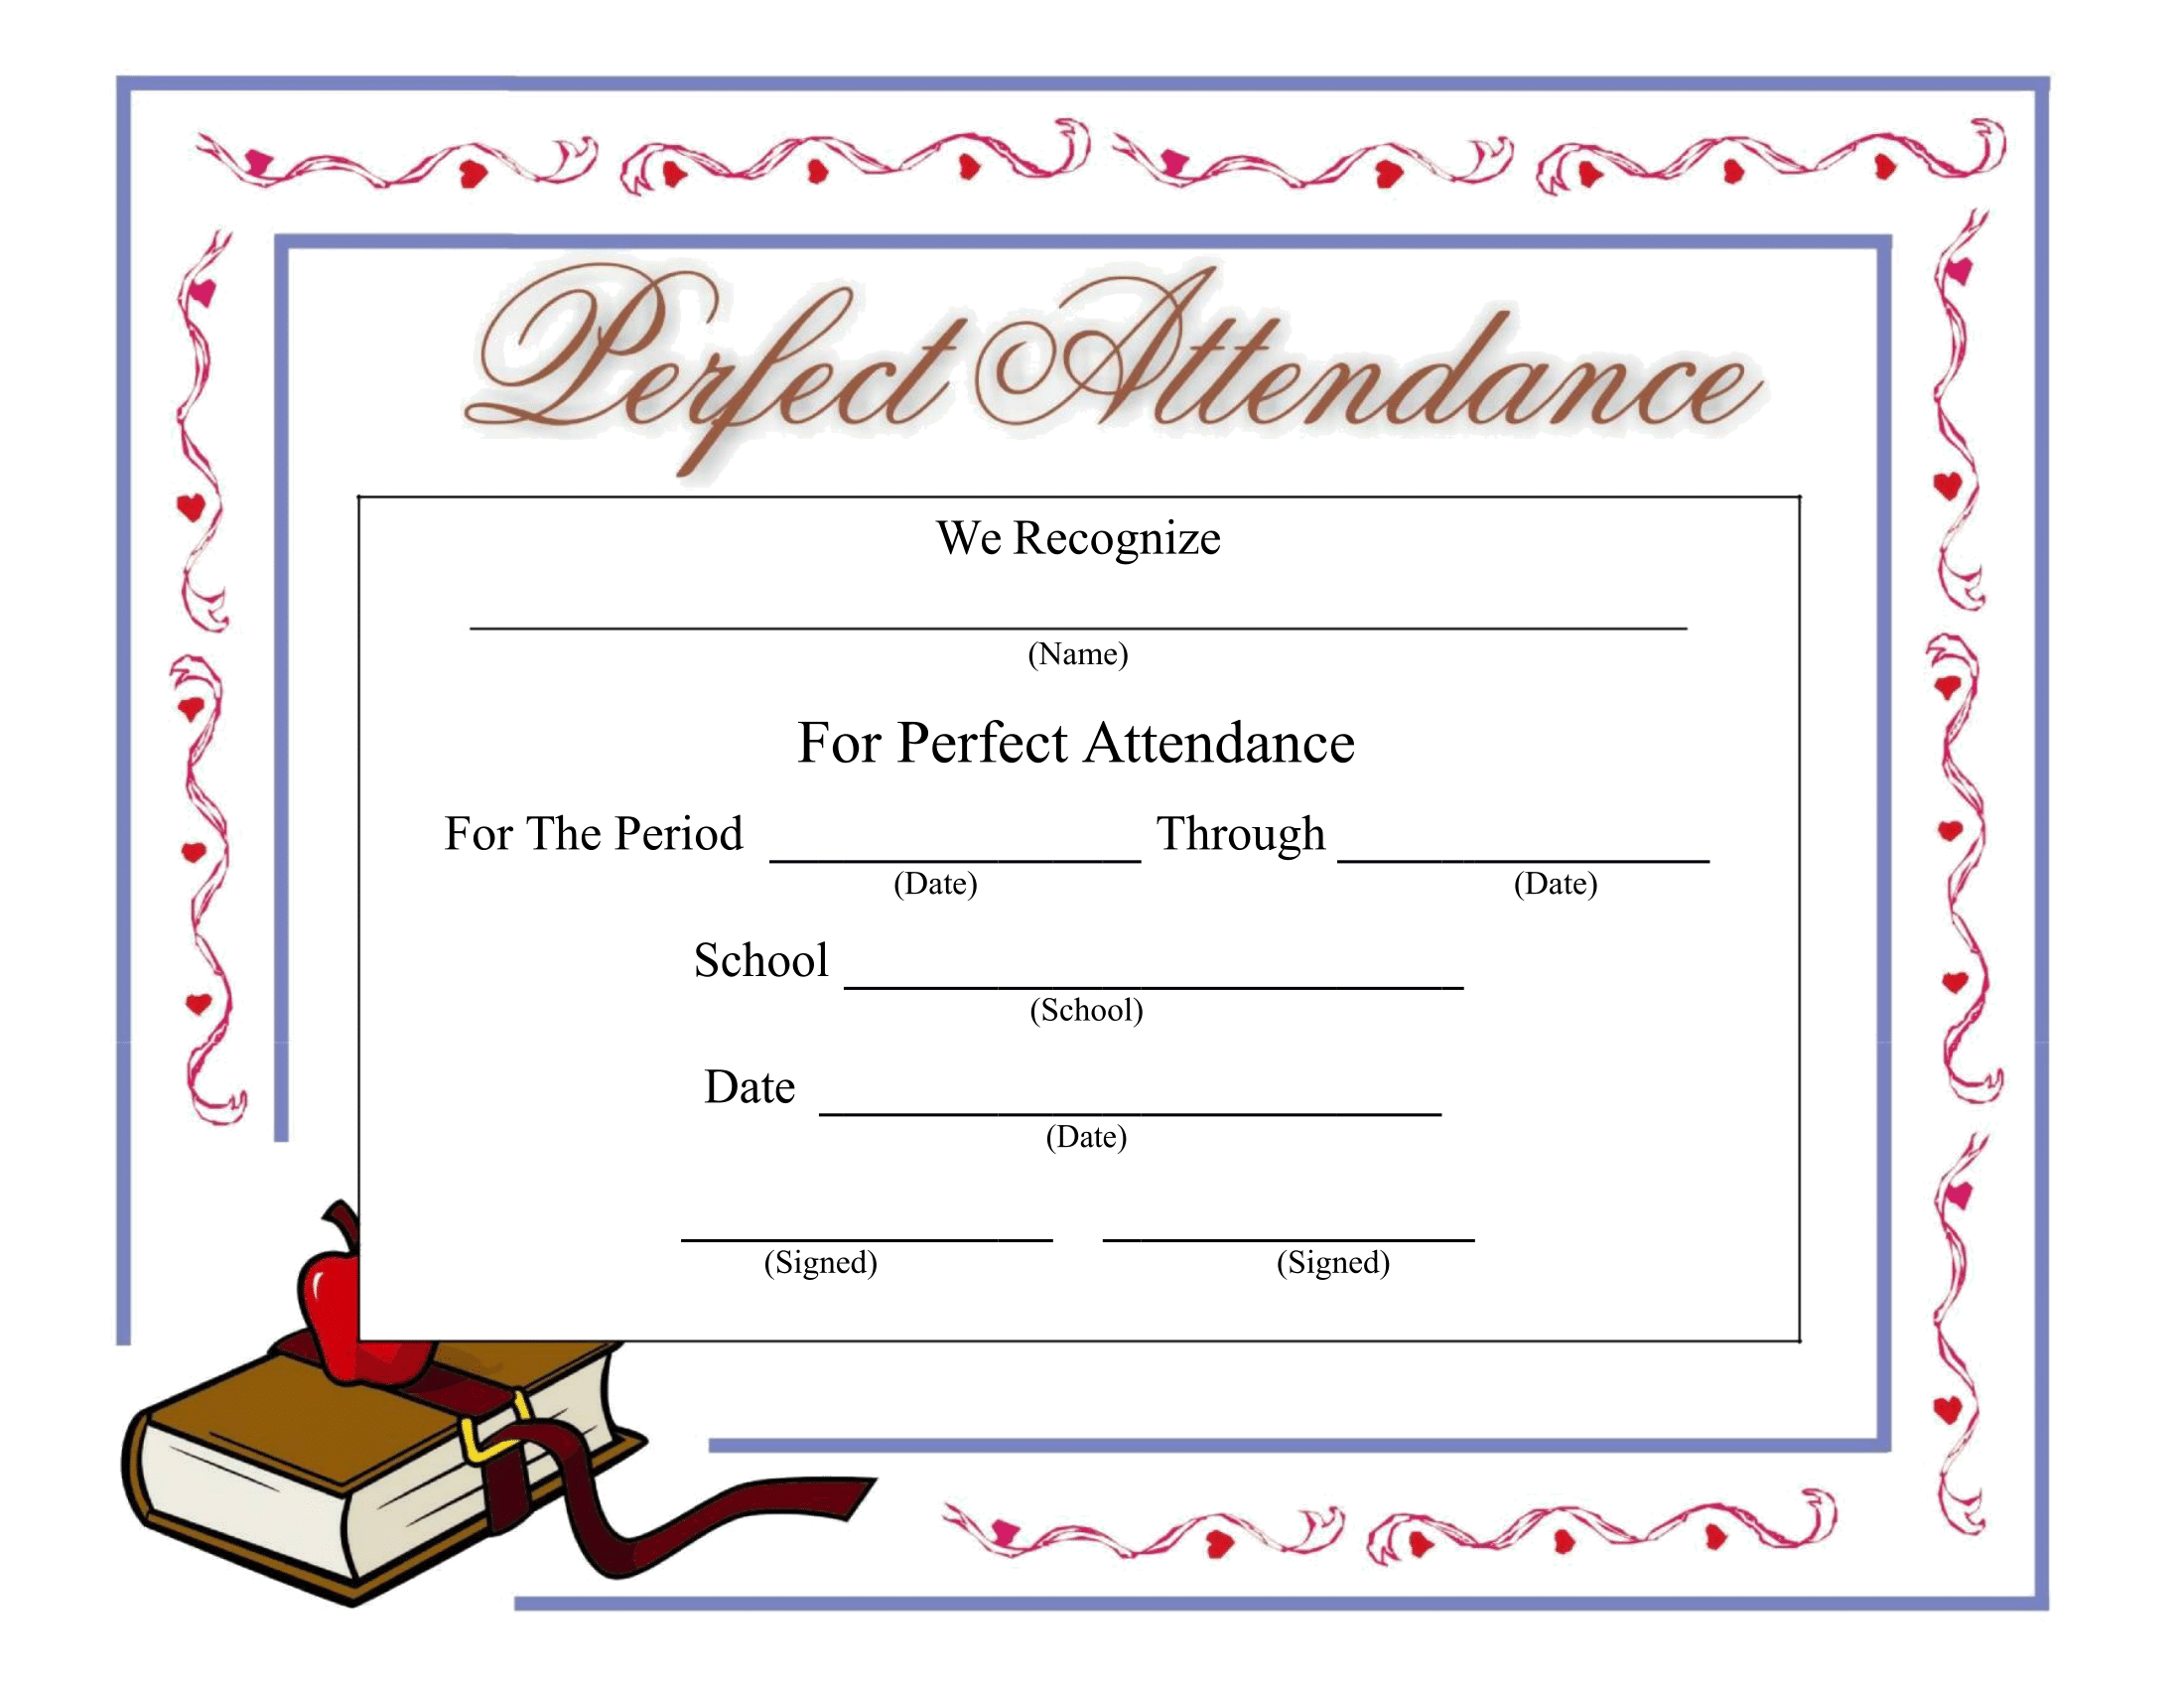 Perfect Attendance Certificate - Download a FREE Template